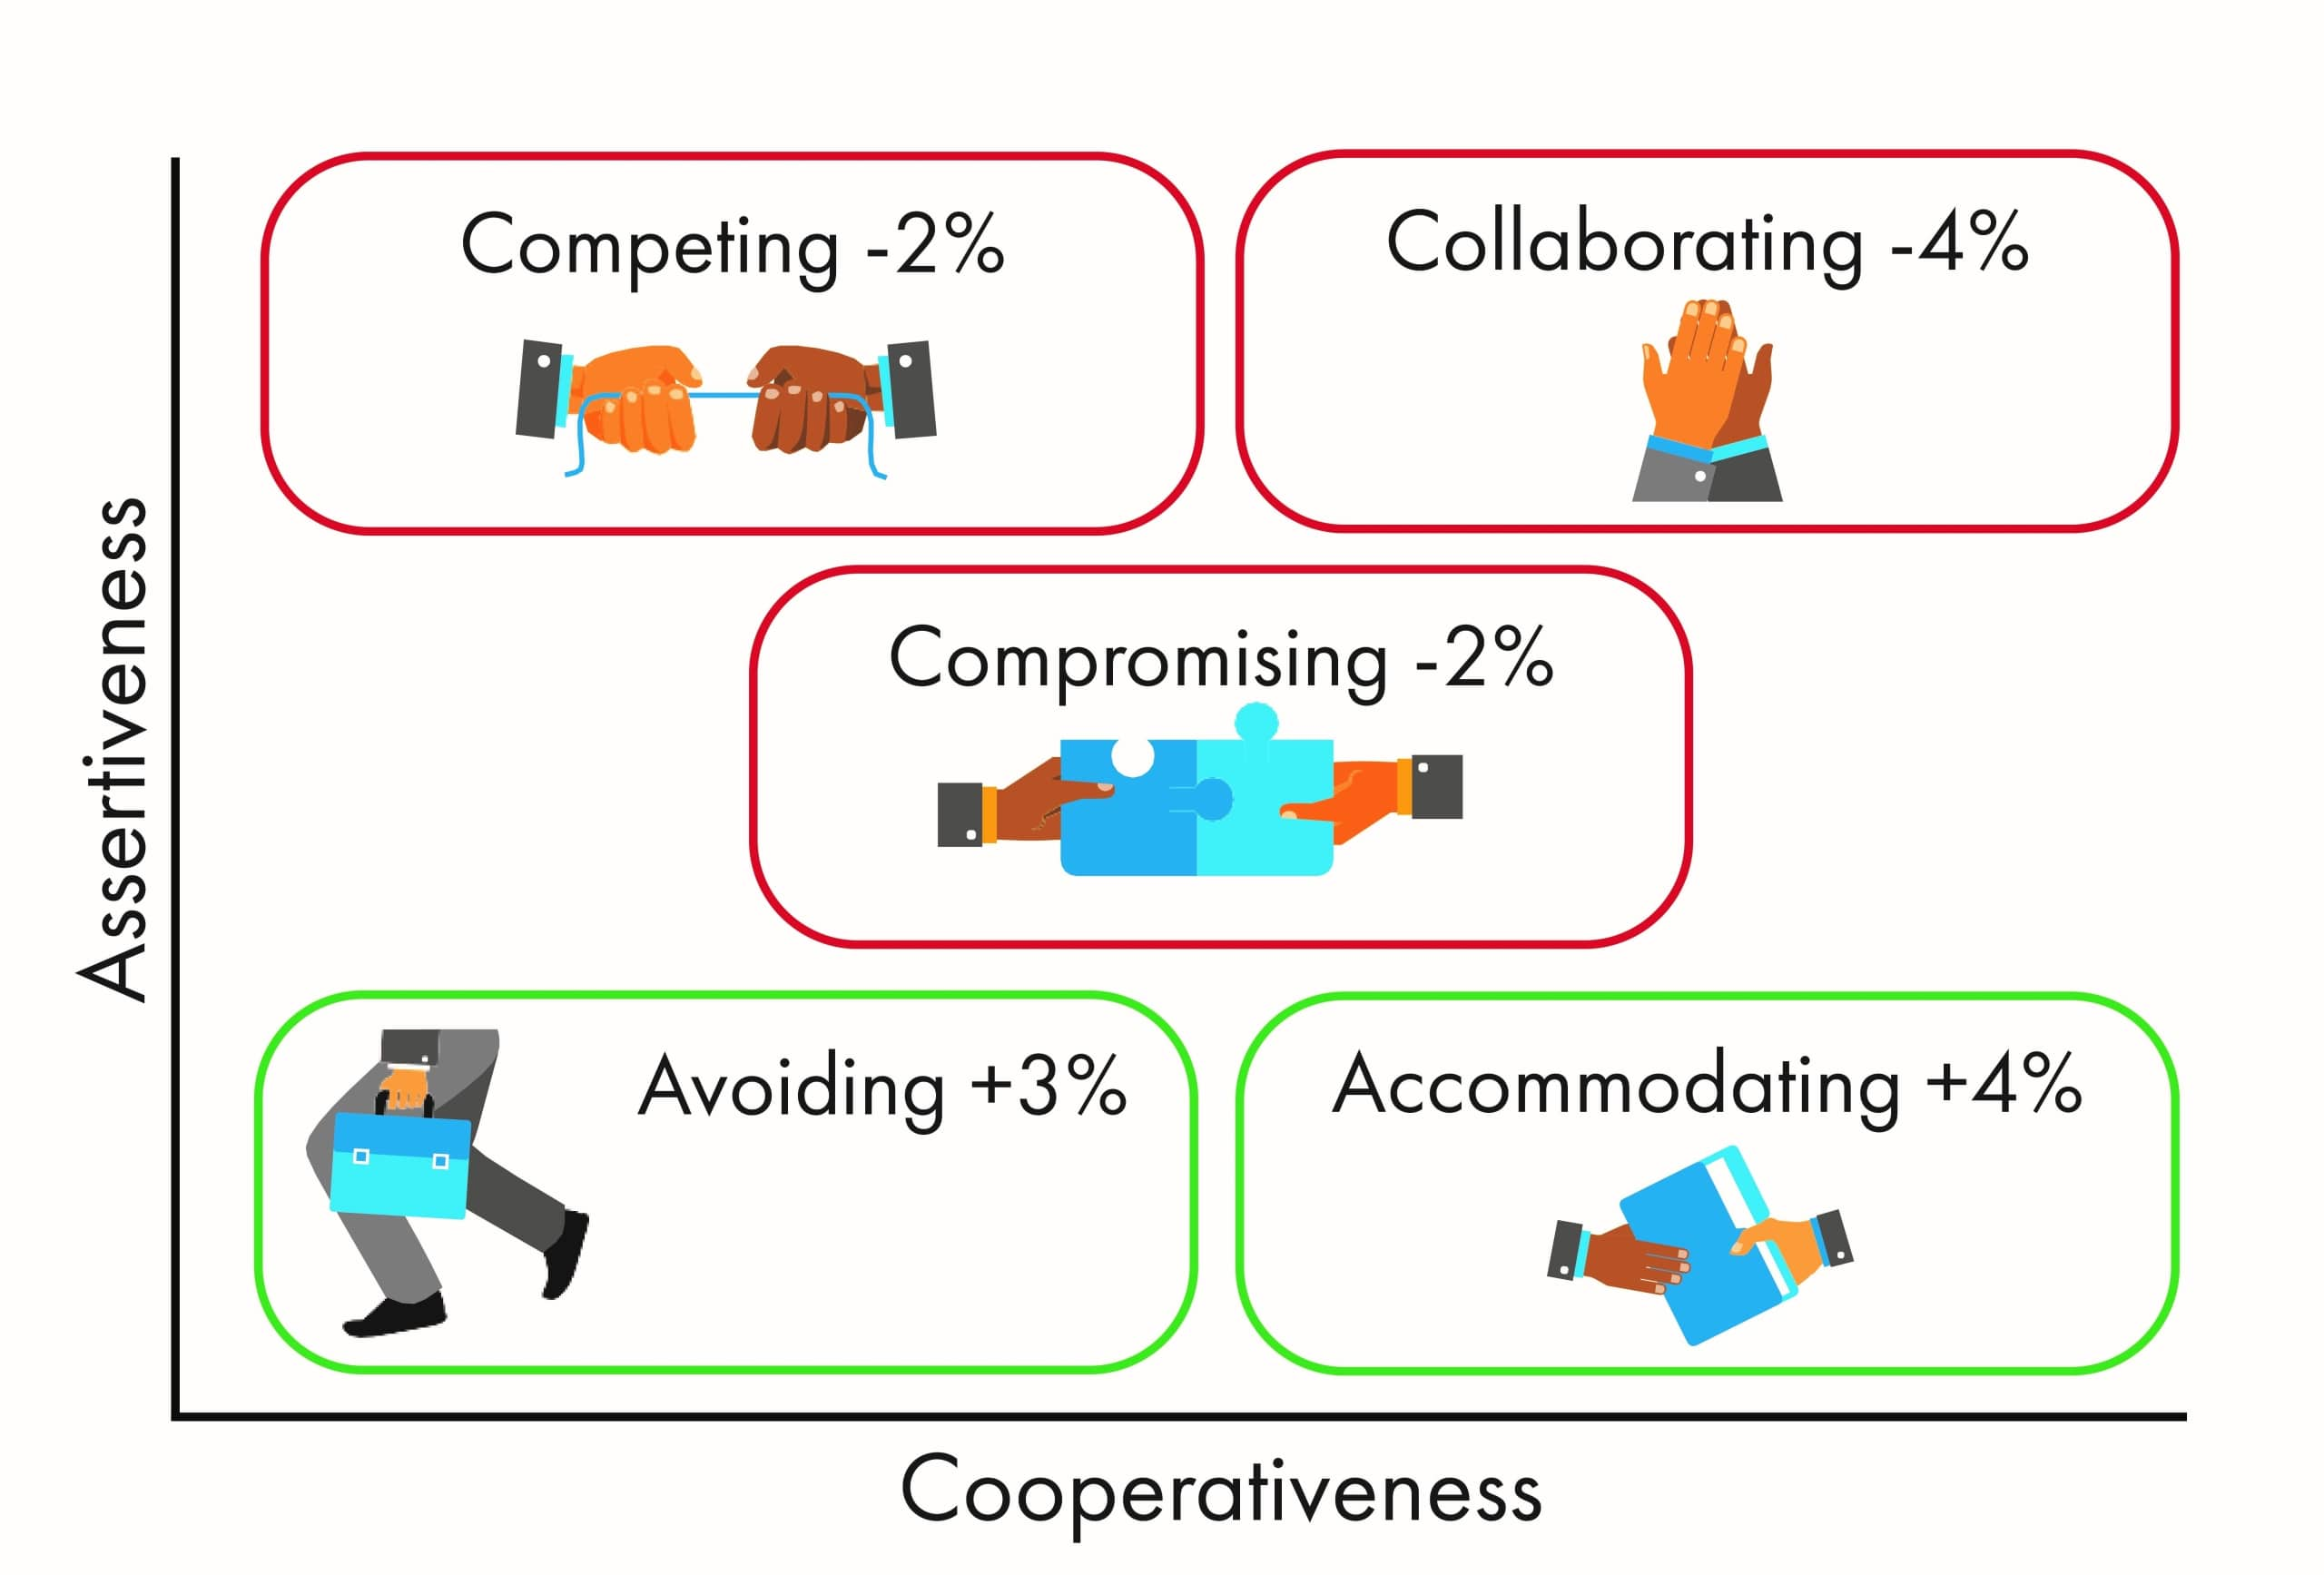 the conflict handling styles assessed by the TKI tool